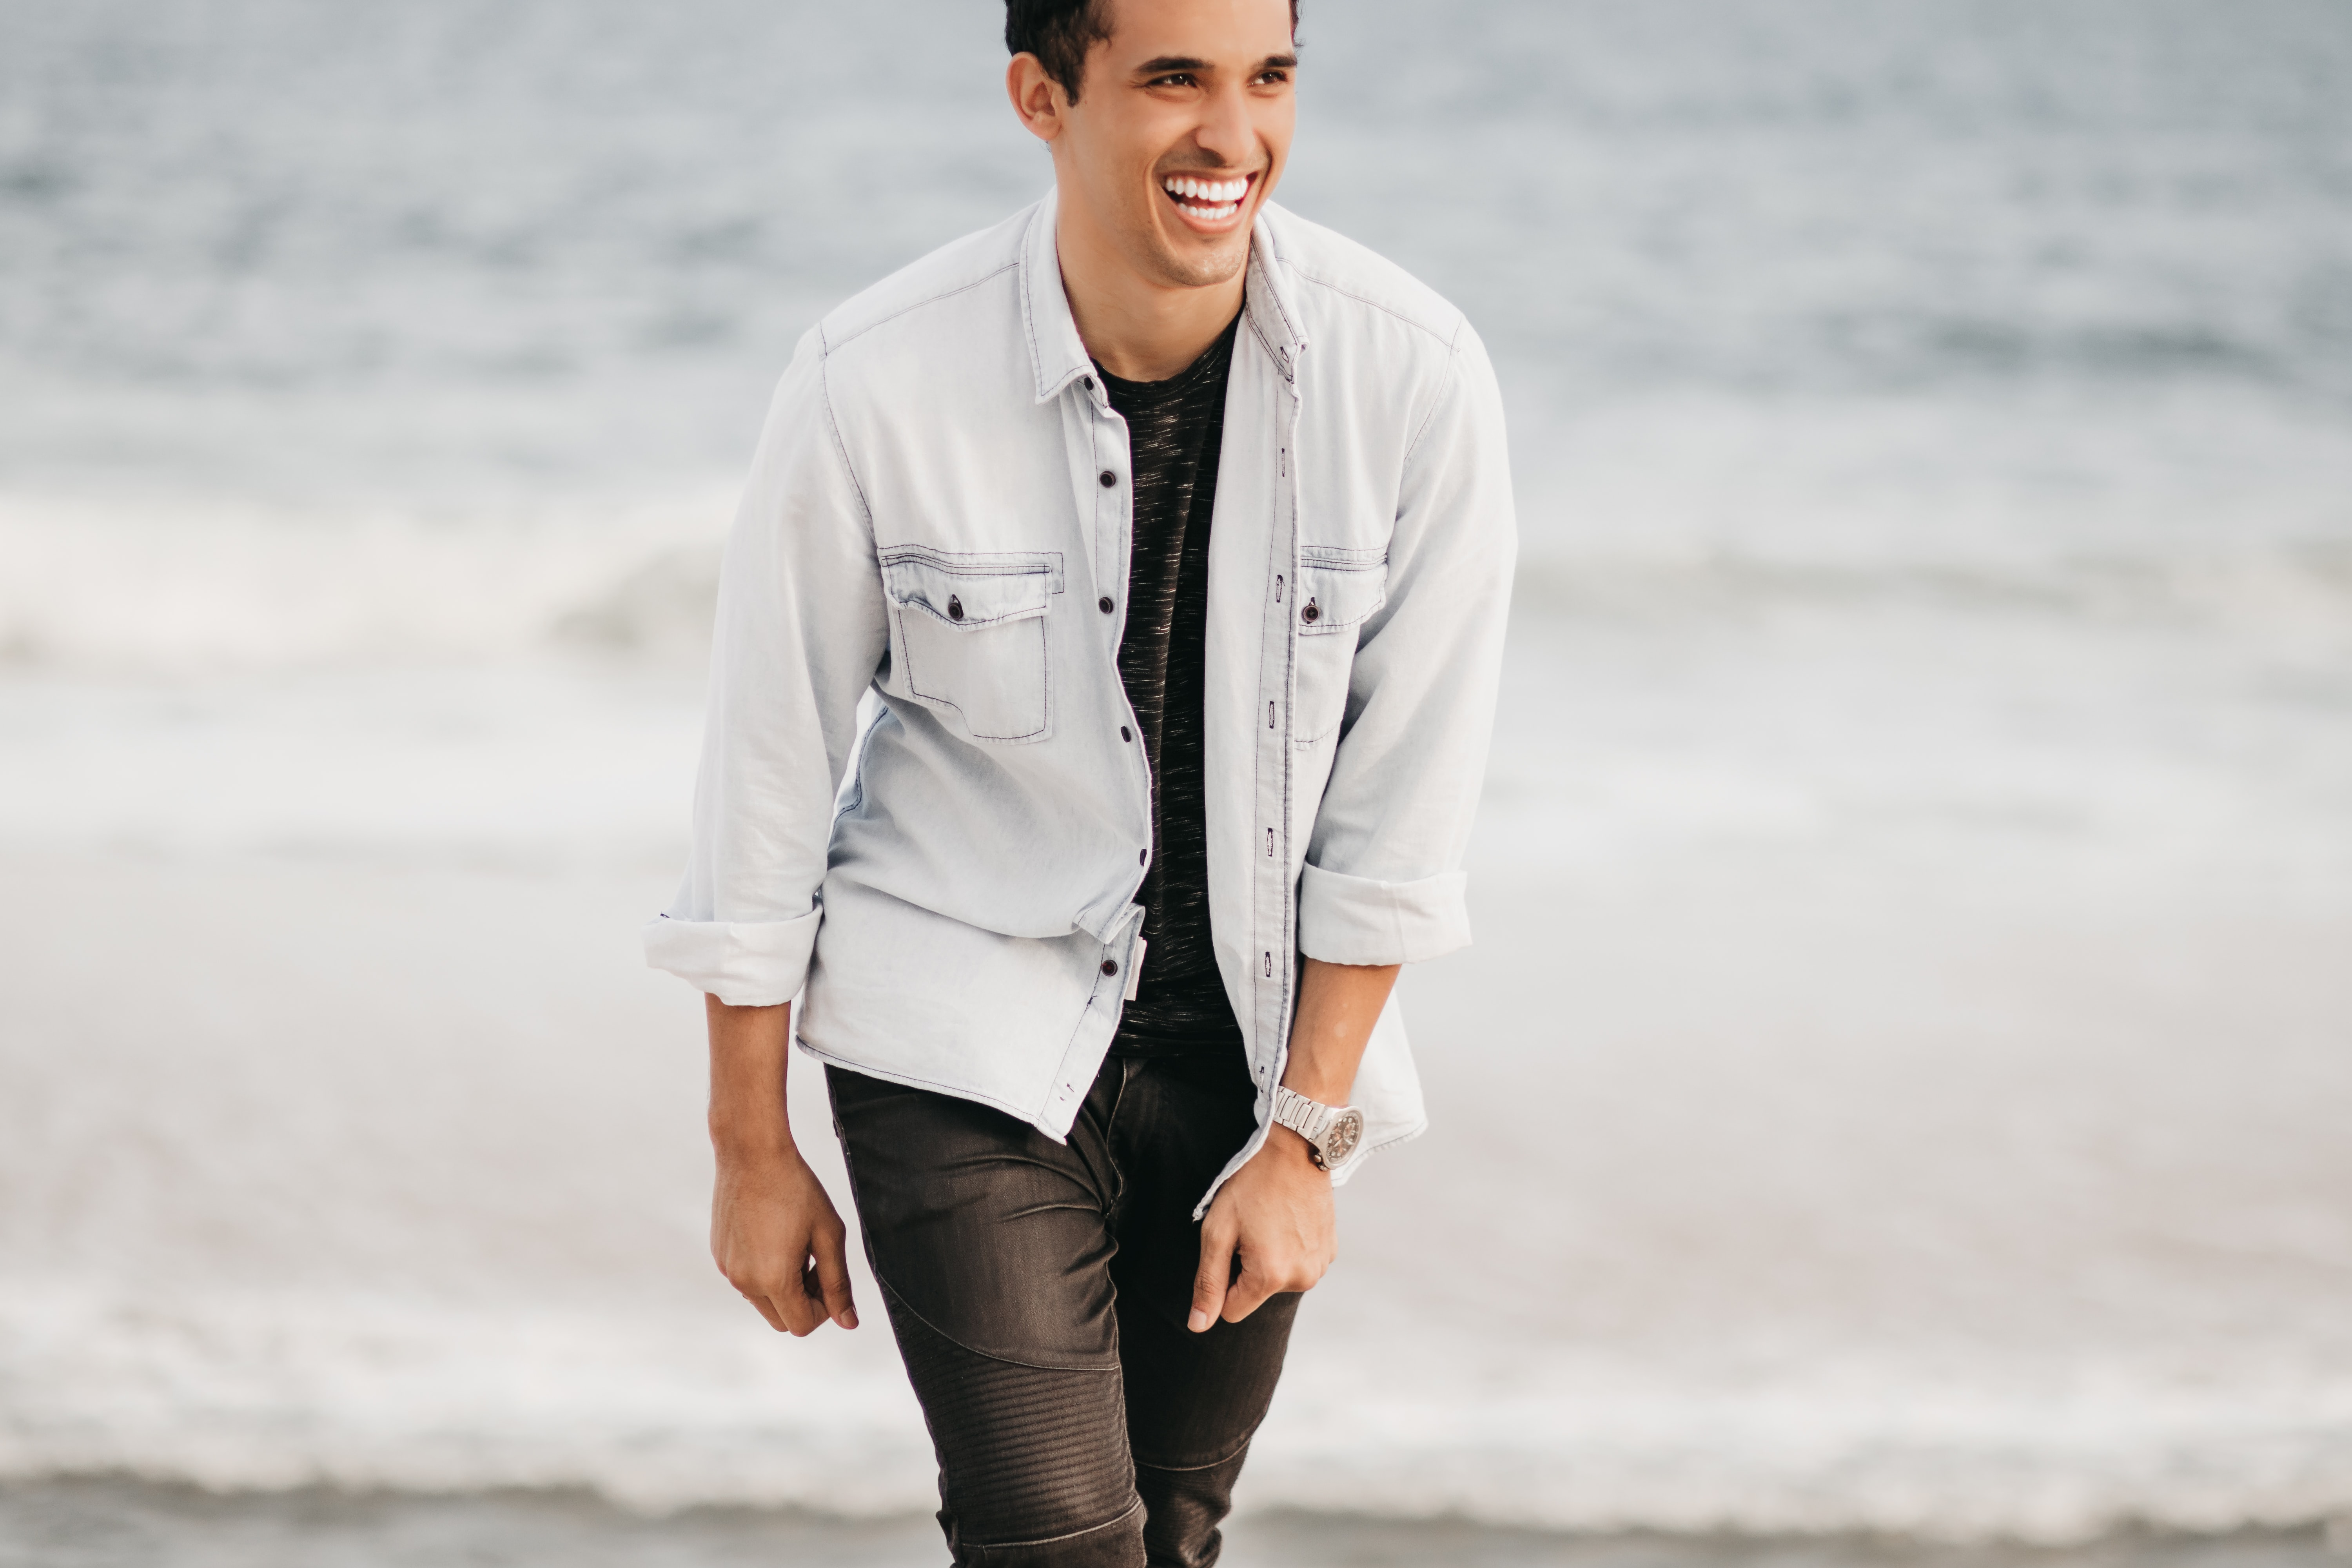 man standing on shore smiling